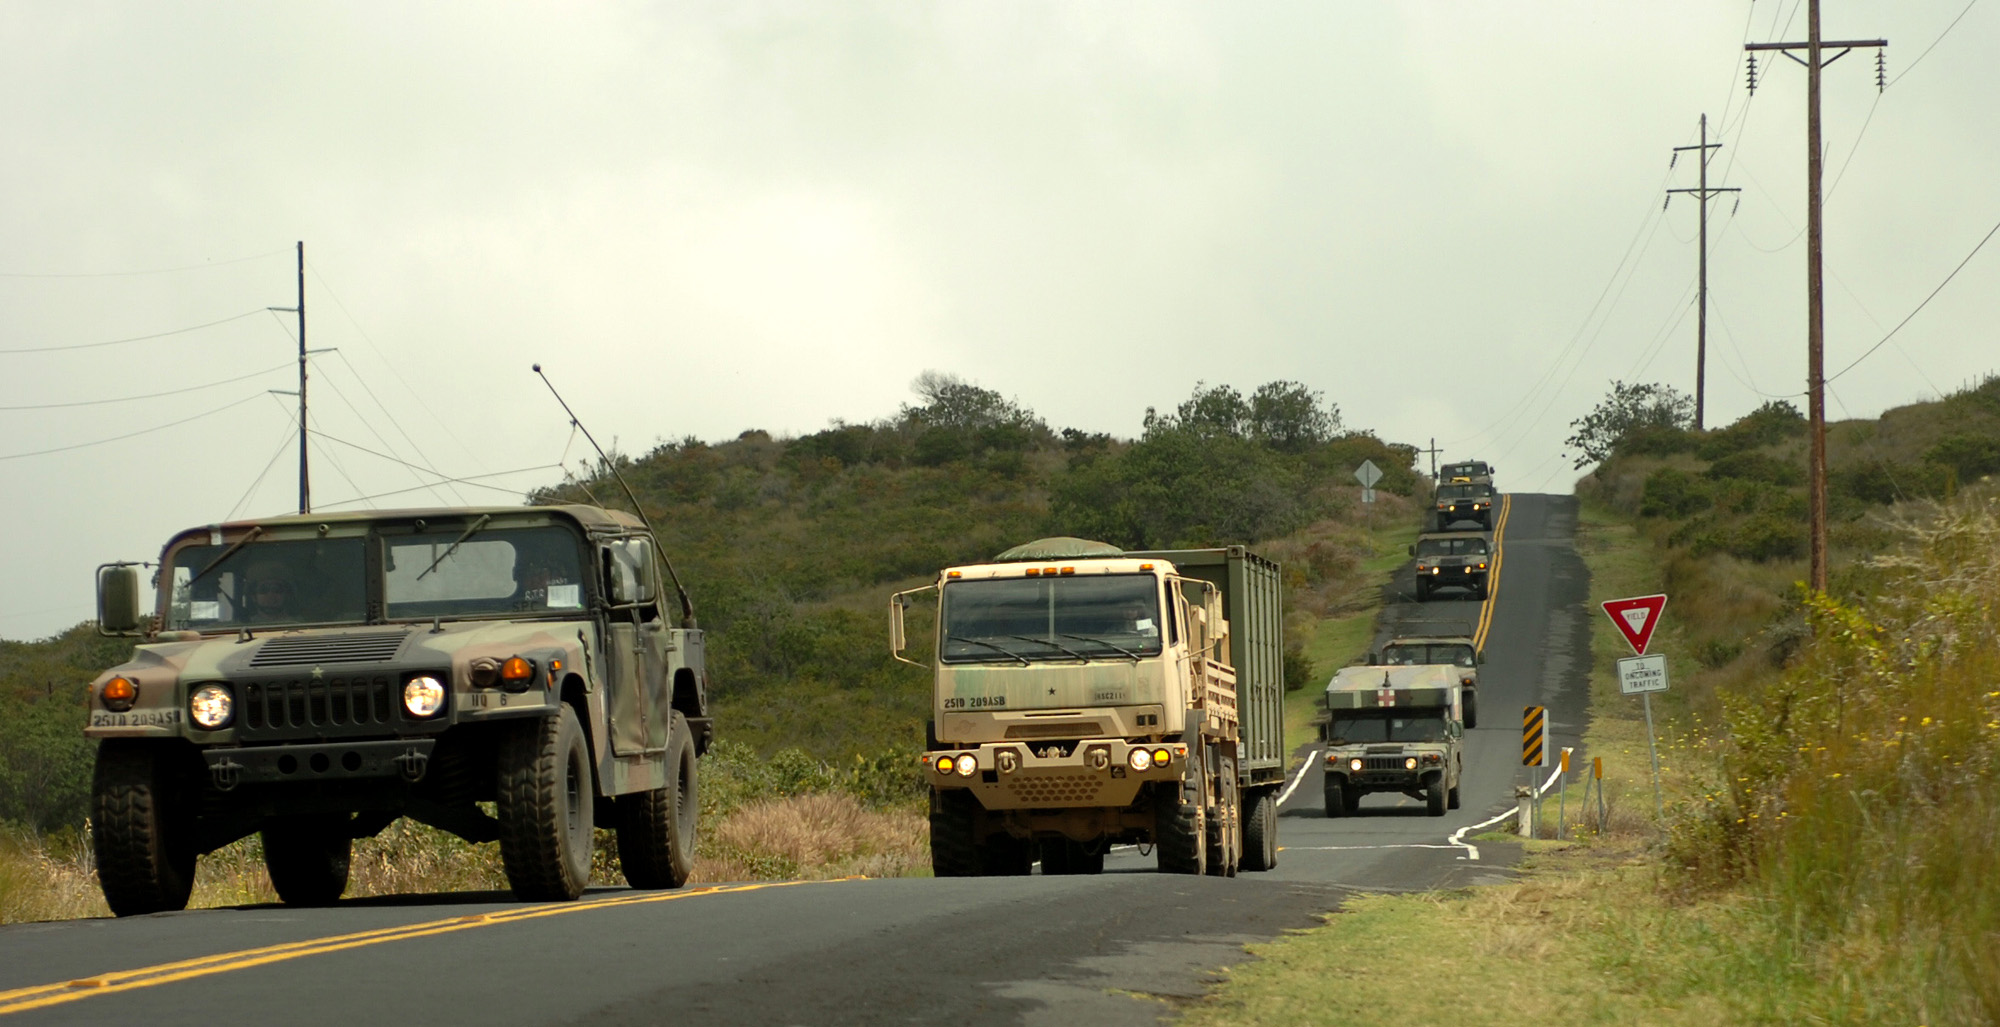 Oahu-based military units will convoy from Pohakuloa Training Area to Kawaihae Harbor Aug. 24-25, between 8 a.m. and 3 p.m., via Saddle Road, Mamalahoa Hwy., Waikoloa Road, Queen Kaahumanu Hwy., and Akoni Pule corridor.